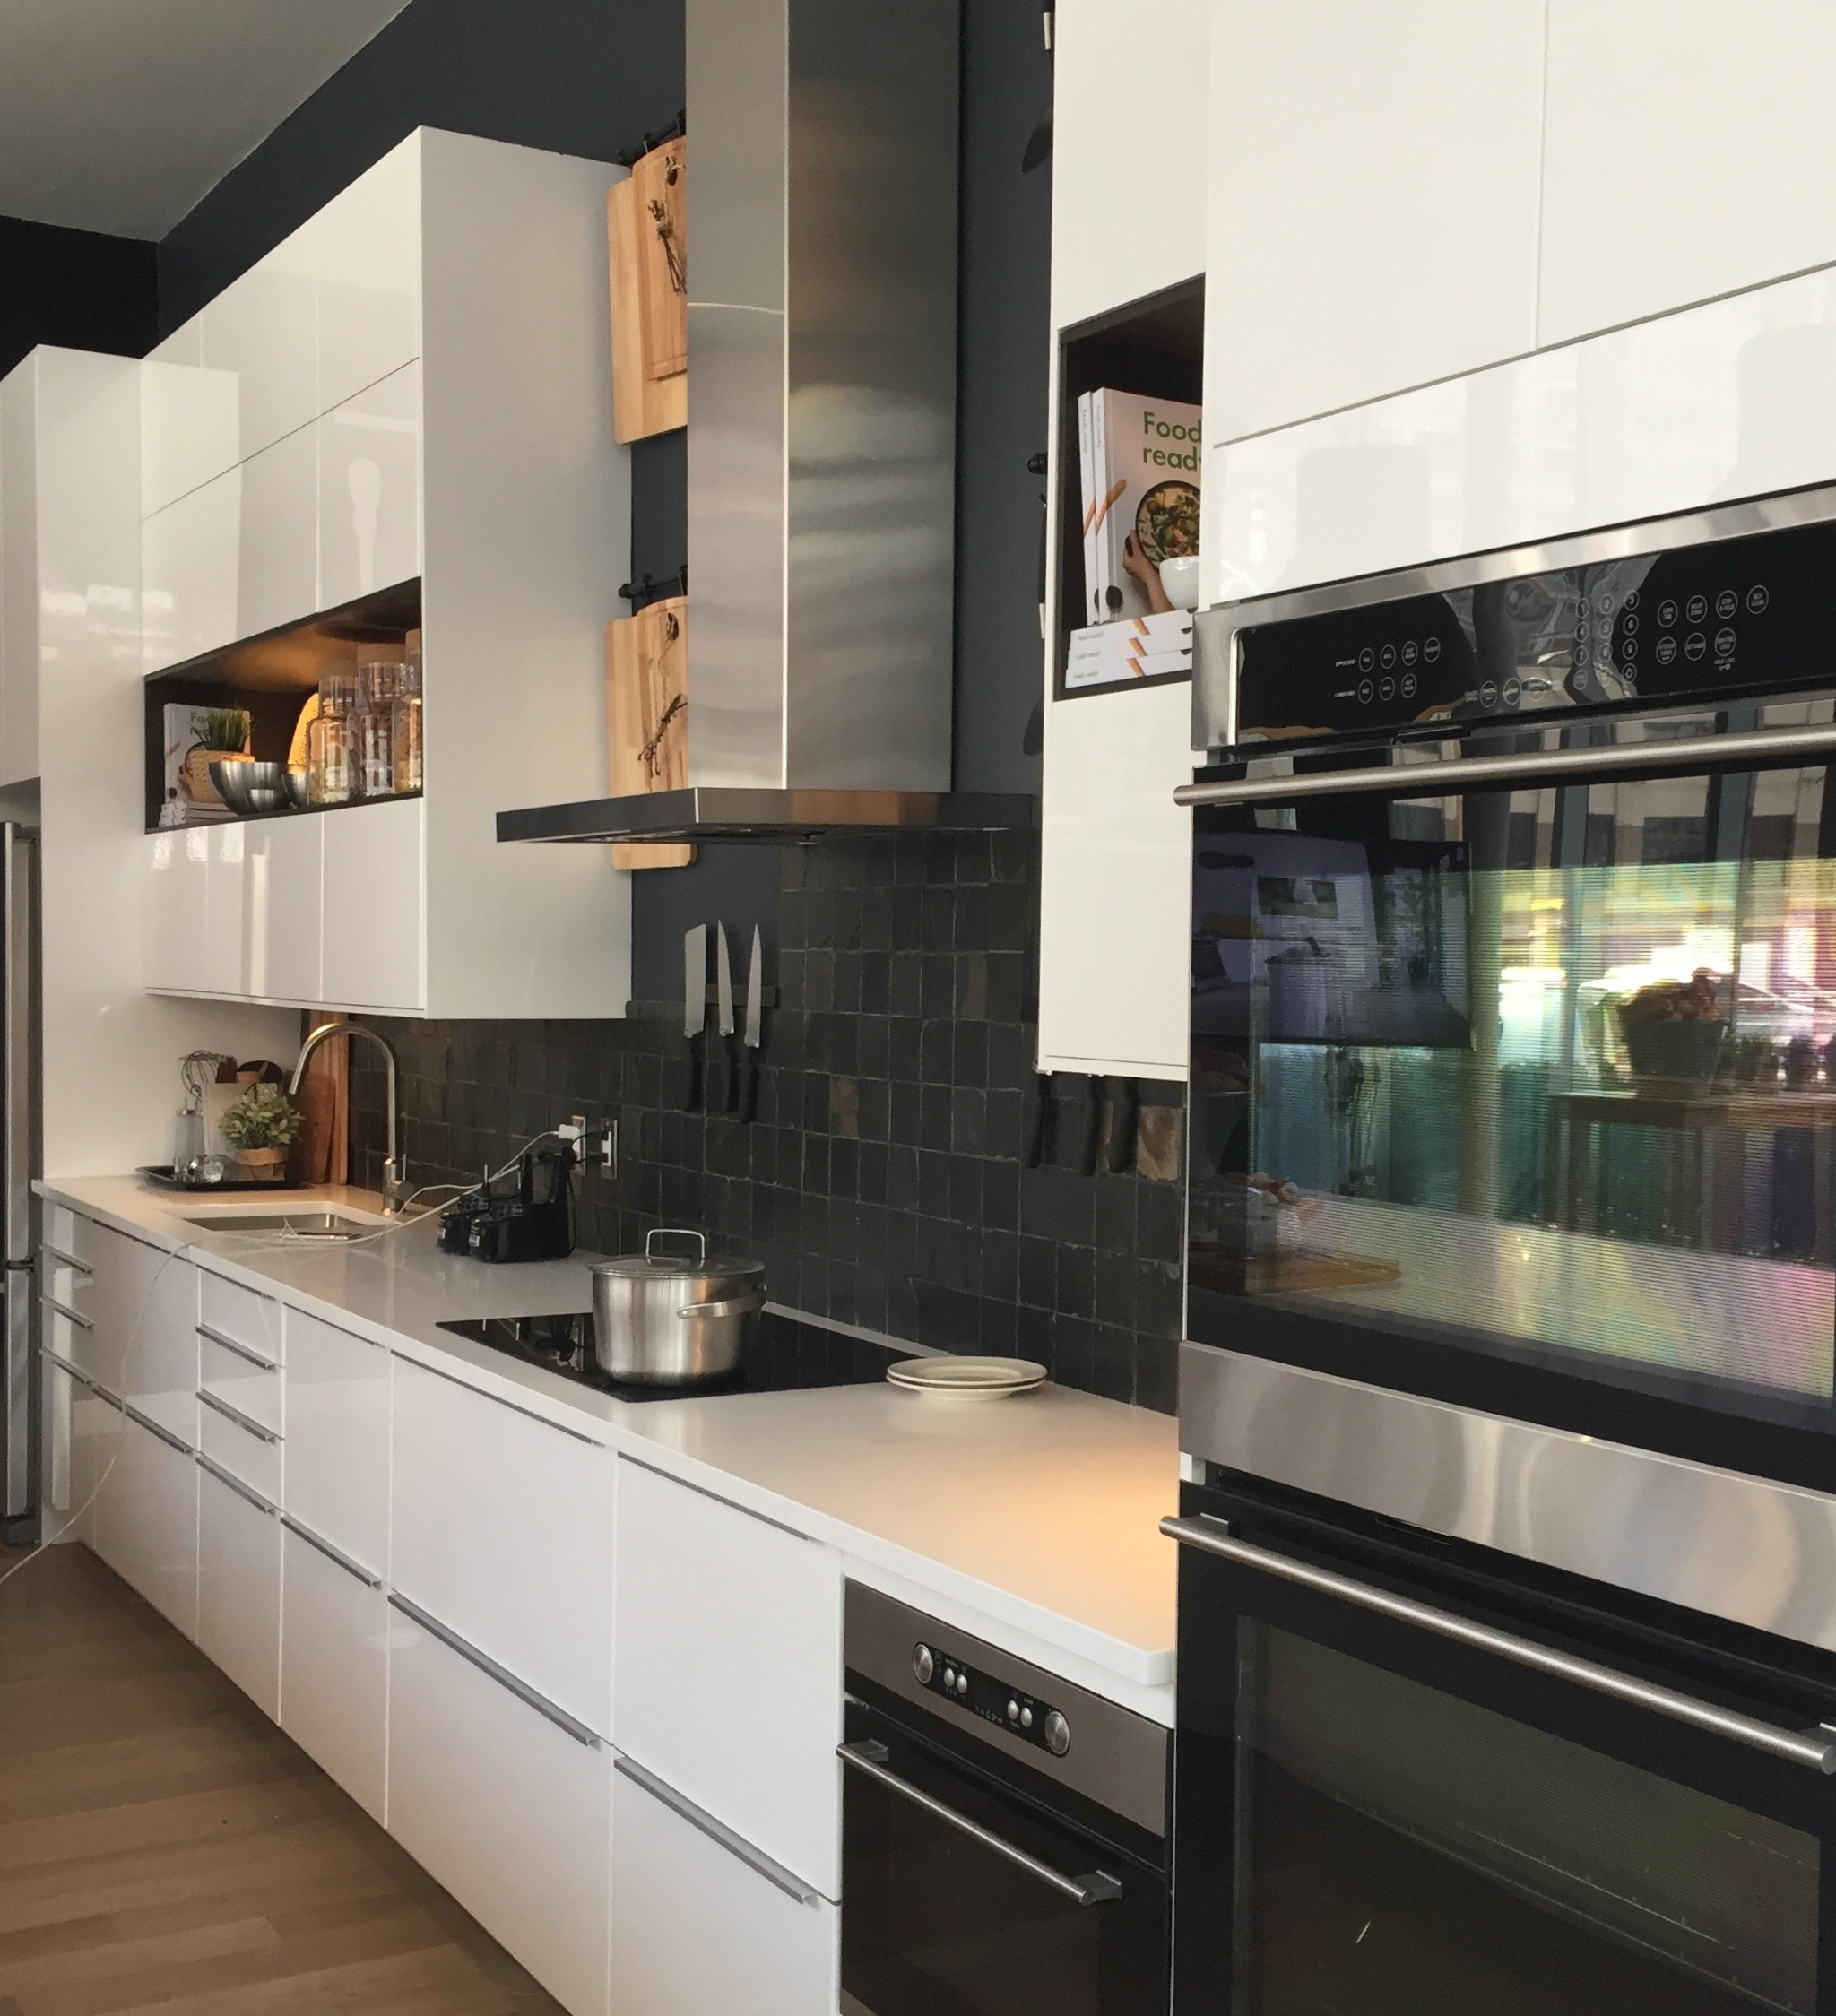 Loved the use of black and wood accents in this white kitchen.